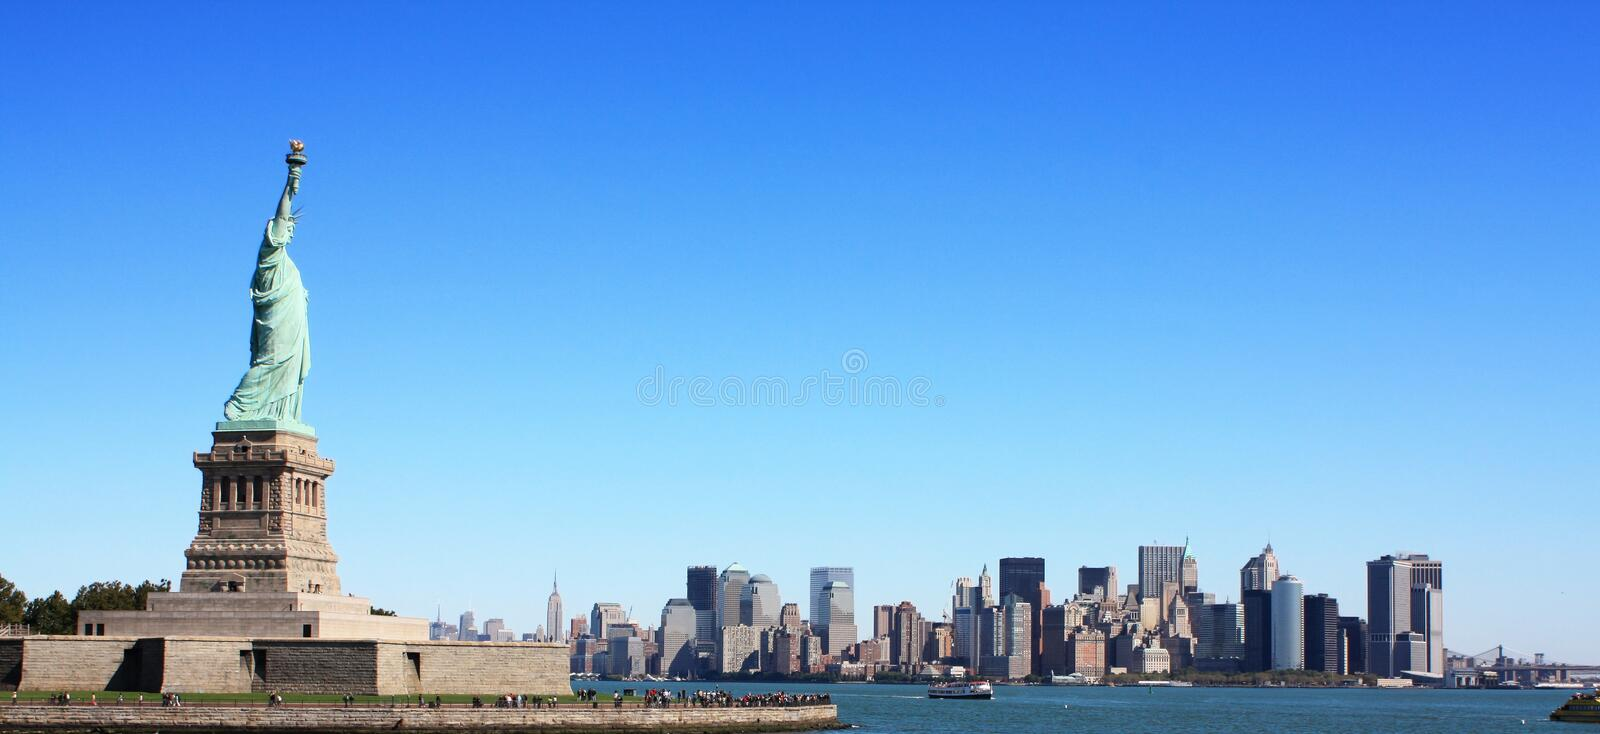 The statue of liberty and new york 2 royalty free stock photos